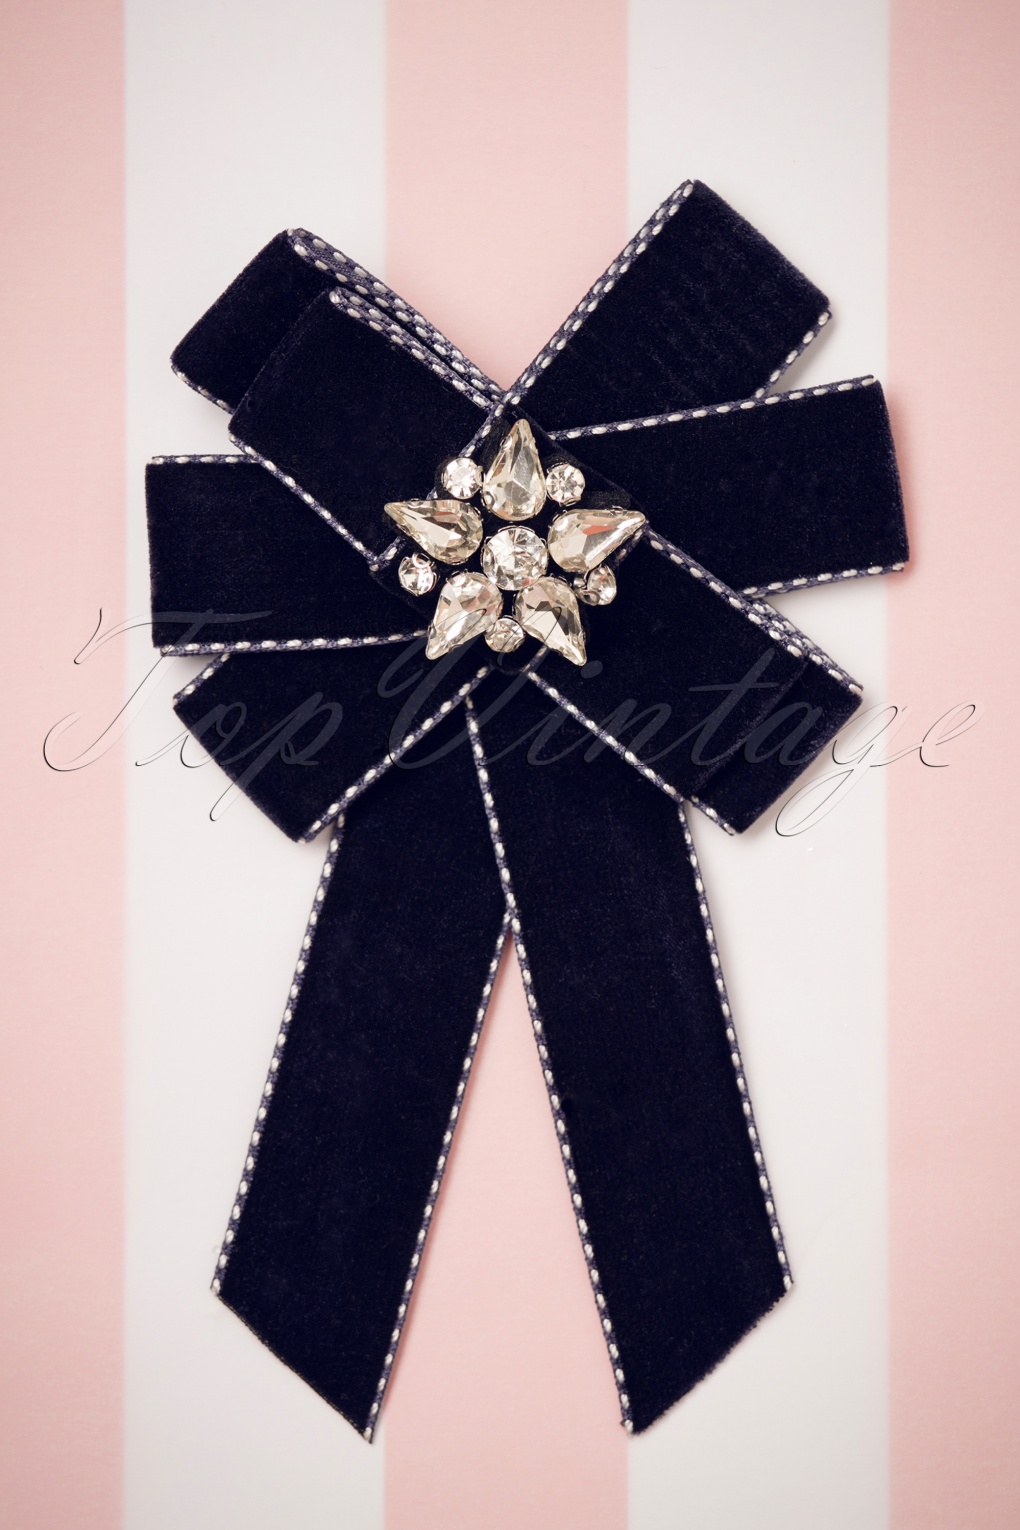 50s Jewelry: Earrings, Necklace, Brooch, Bracelet 50s Velvet Bow Brooch in Navy £15.00 AT vintagedancer.com